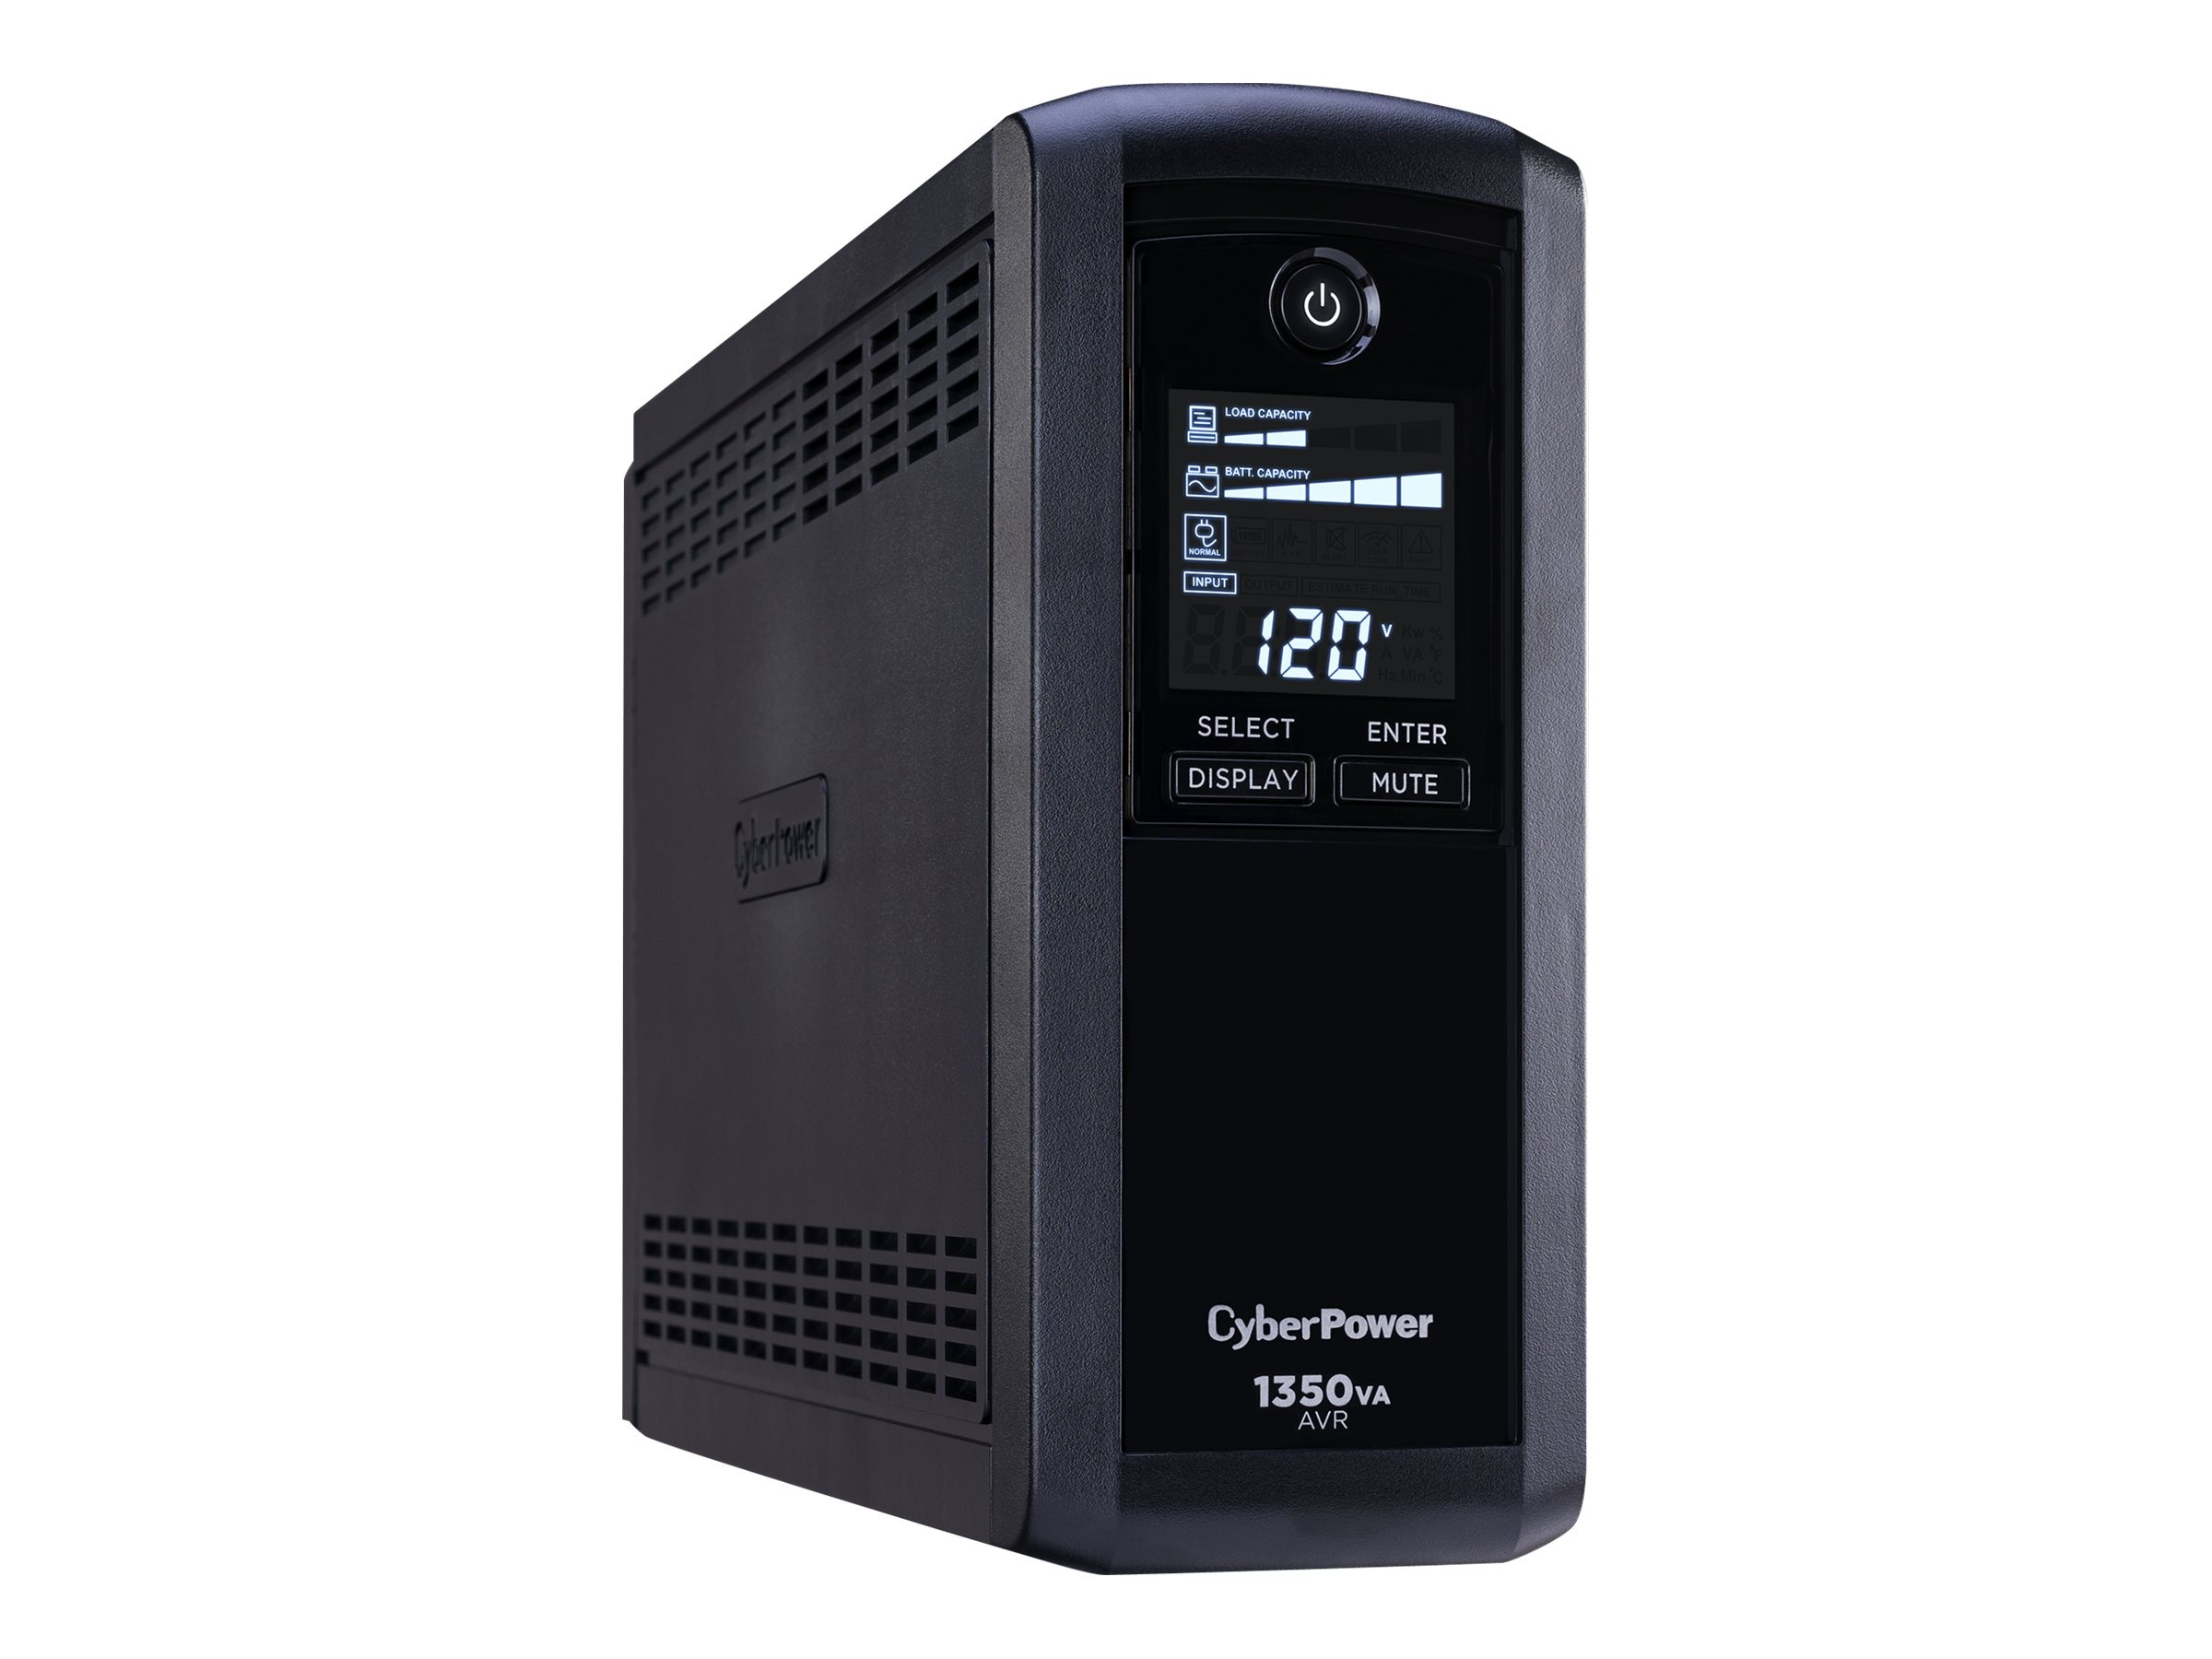 CyberPower 1350VA 810W UPS AVR (8) Outlets RJ-11 RJ-45 Coax Tower LCD Display, Instant Rebate - Save $10, CP1350AVRLCD